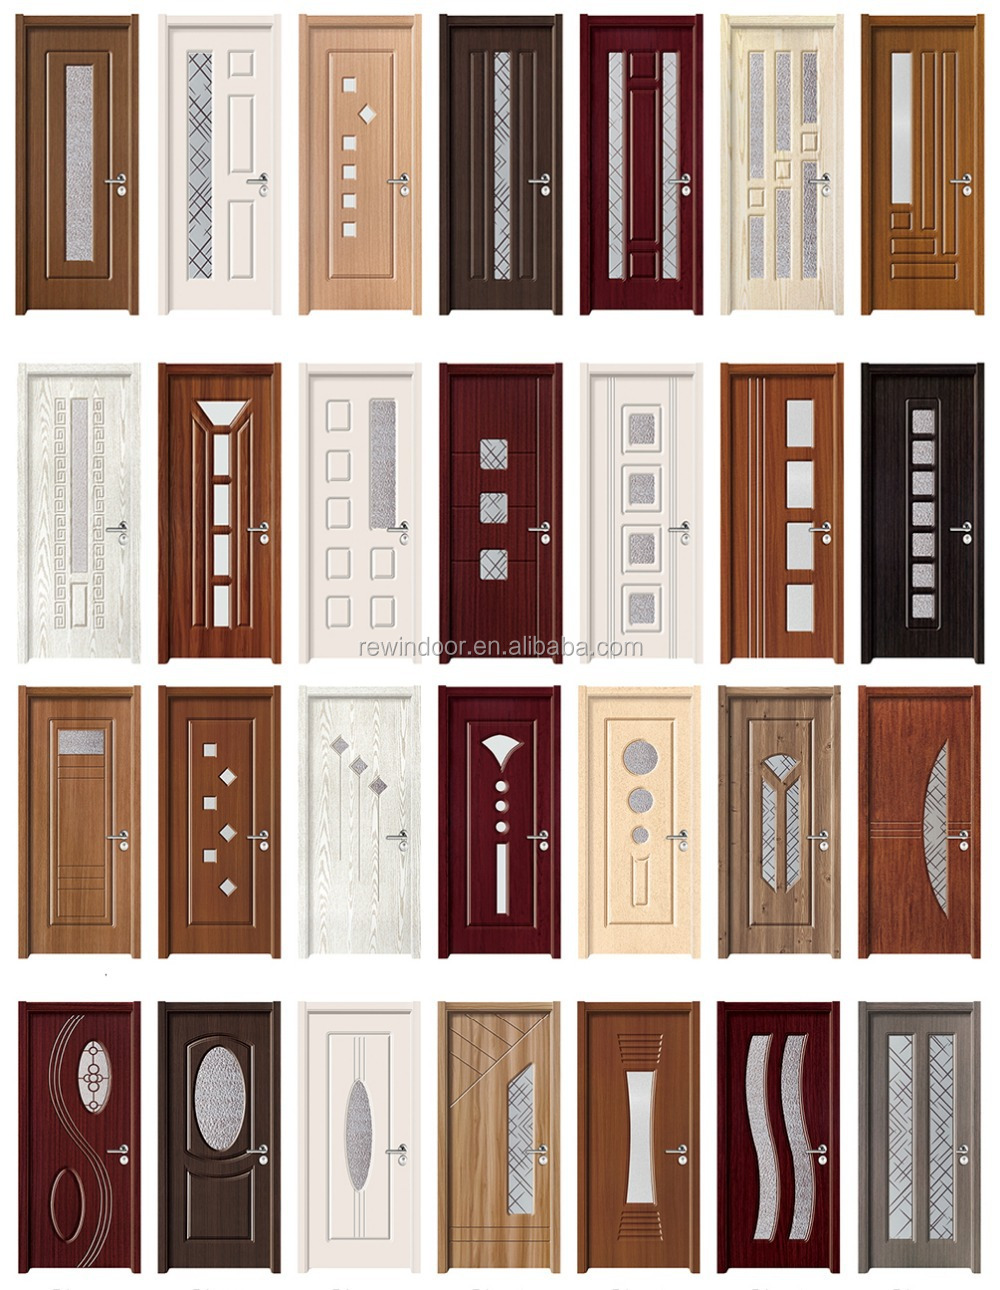 Bathroom pvc doors prices fiber bathroom door teak wood for Wood door design 2016